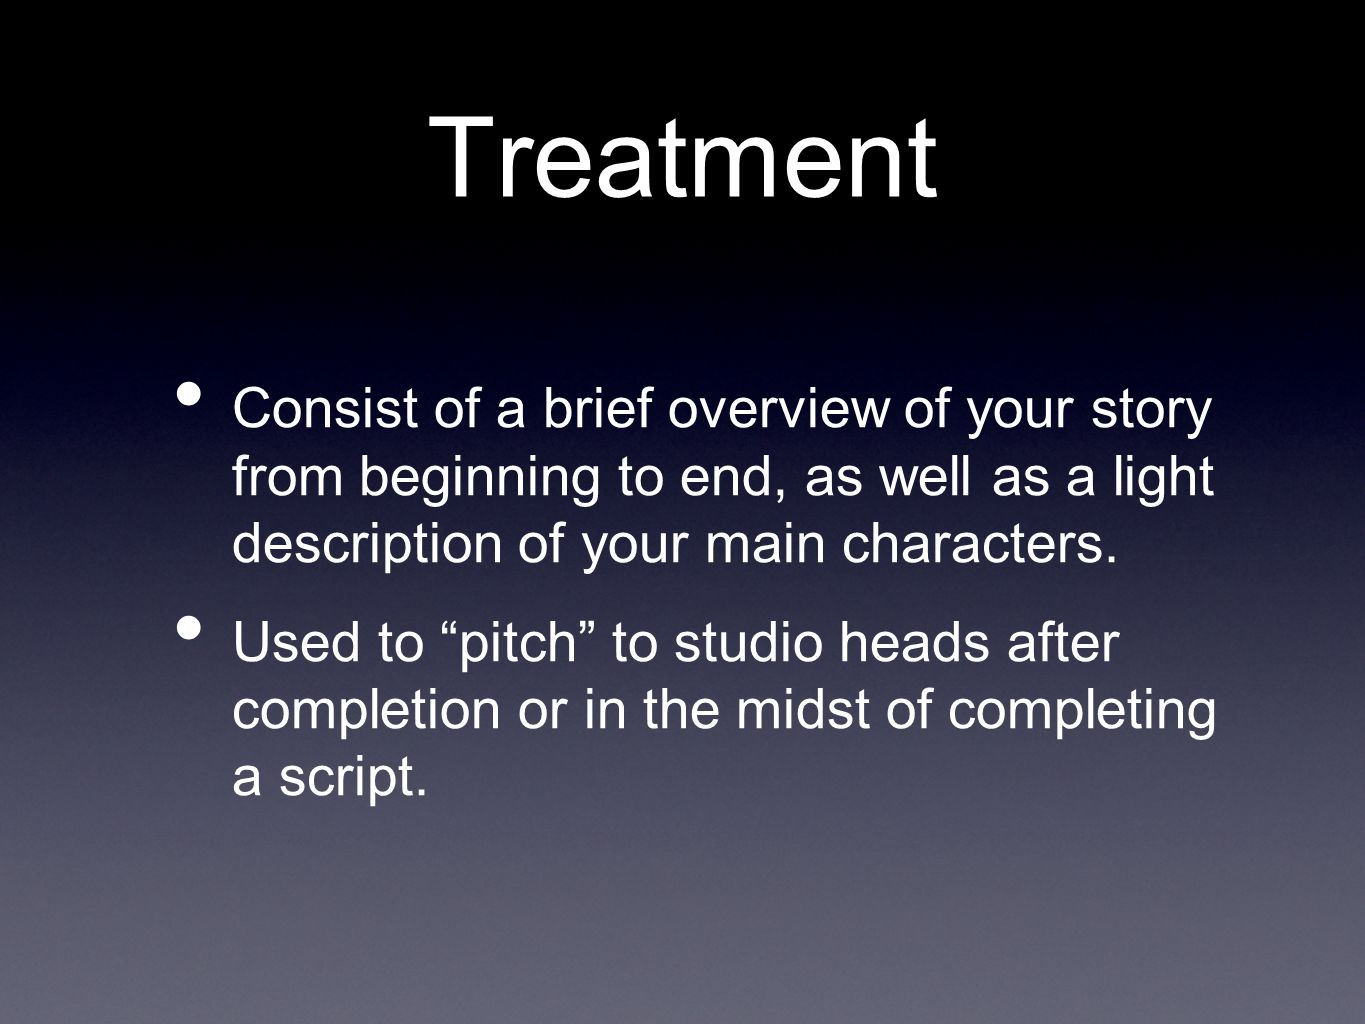 Treatment Consist of a brief overview of your story from beginning to end, as well as a light description of your main characters.